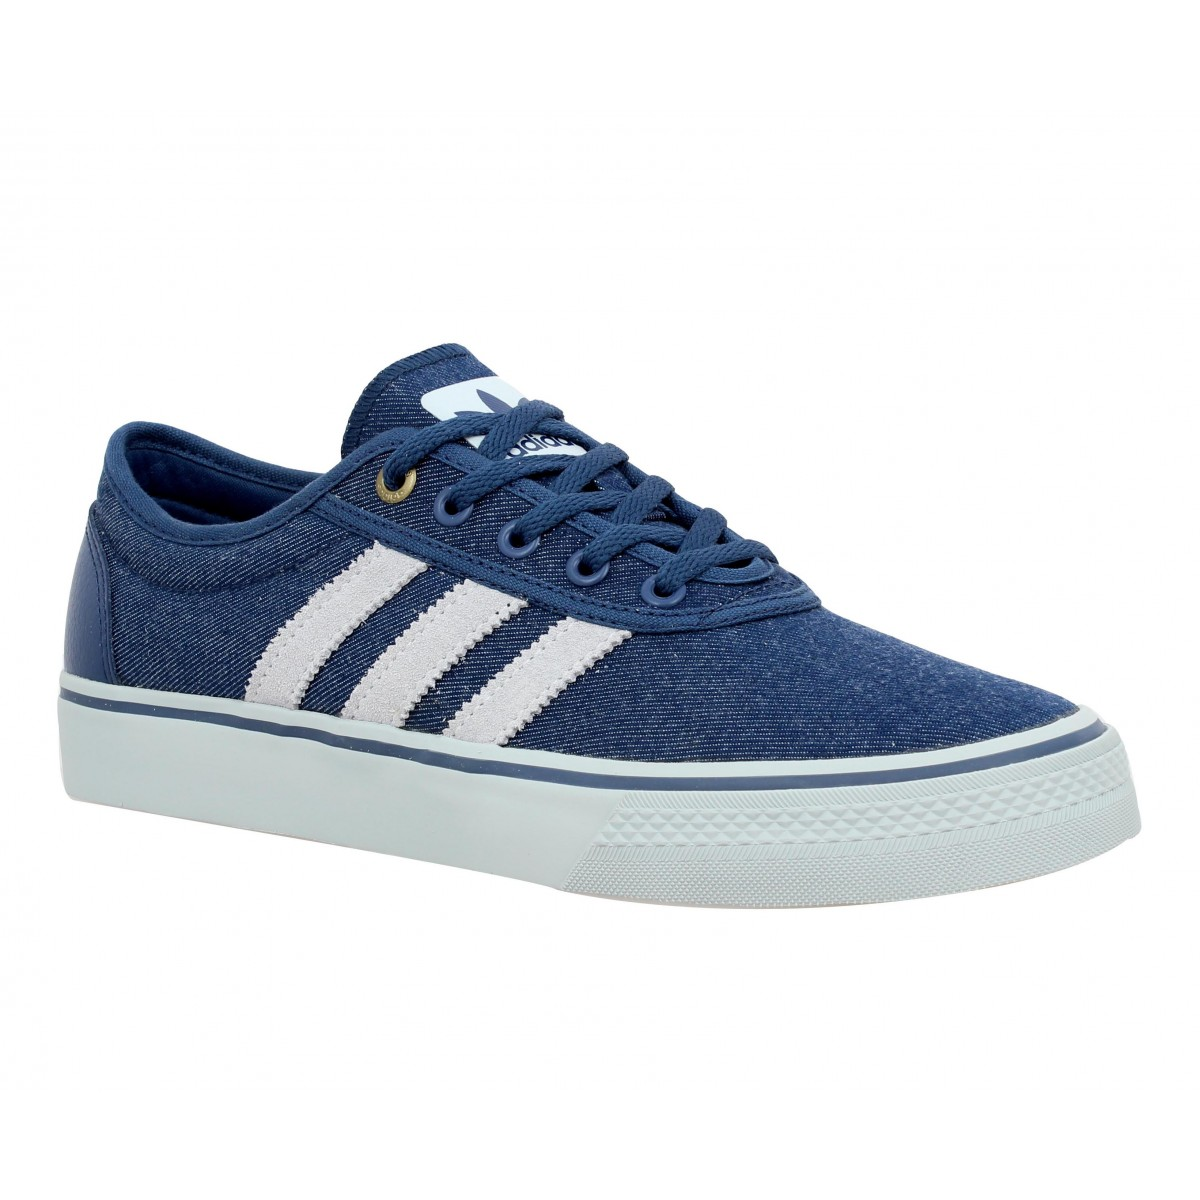 adidas chaussures adidas chaussures toile. Black Bedroom Furniture Sets. Home Design Ideas